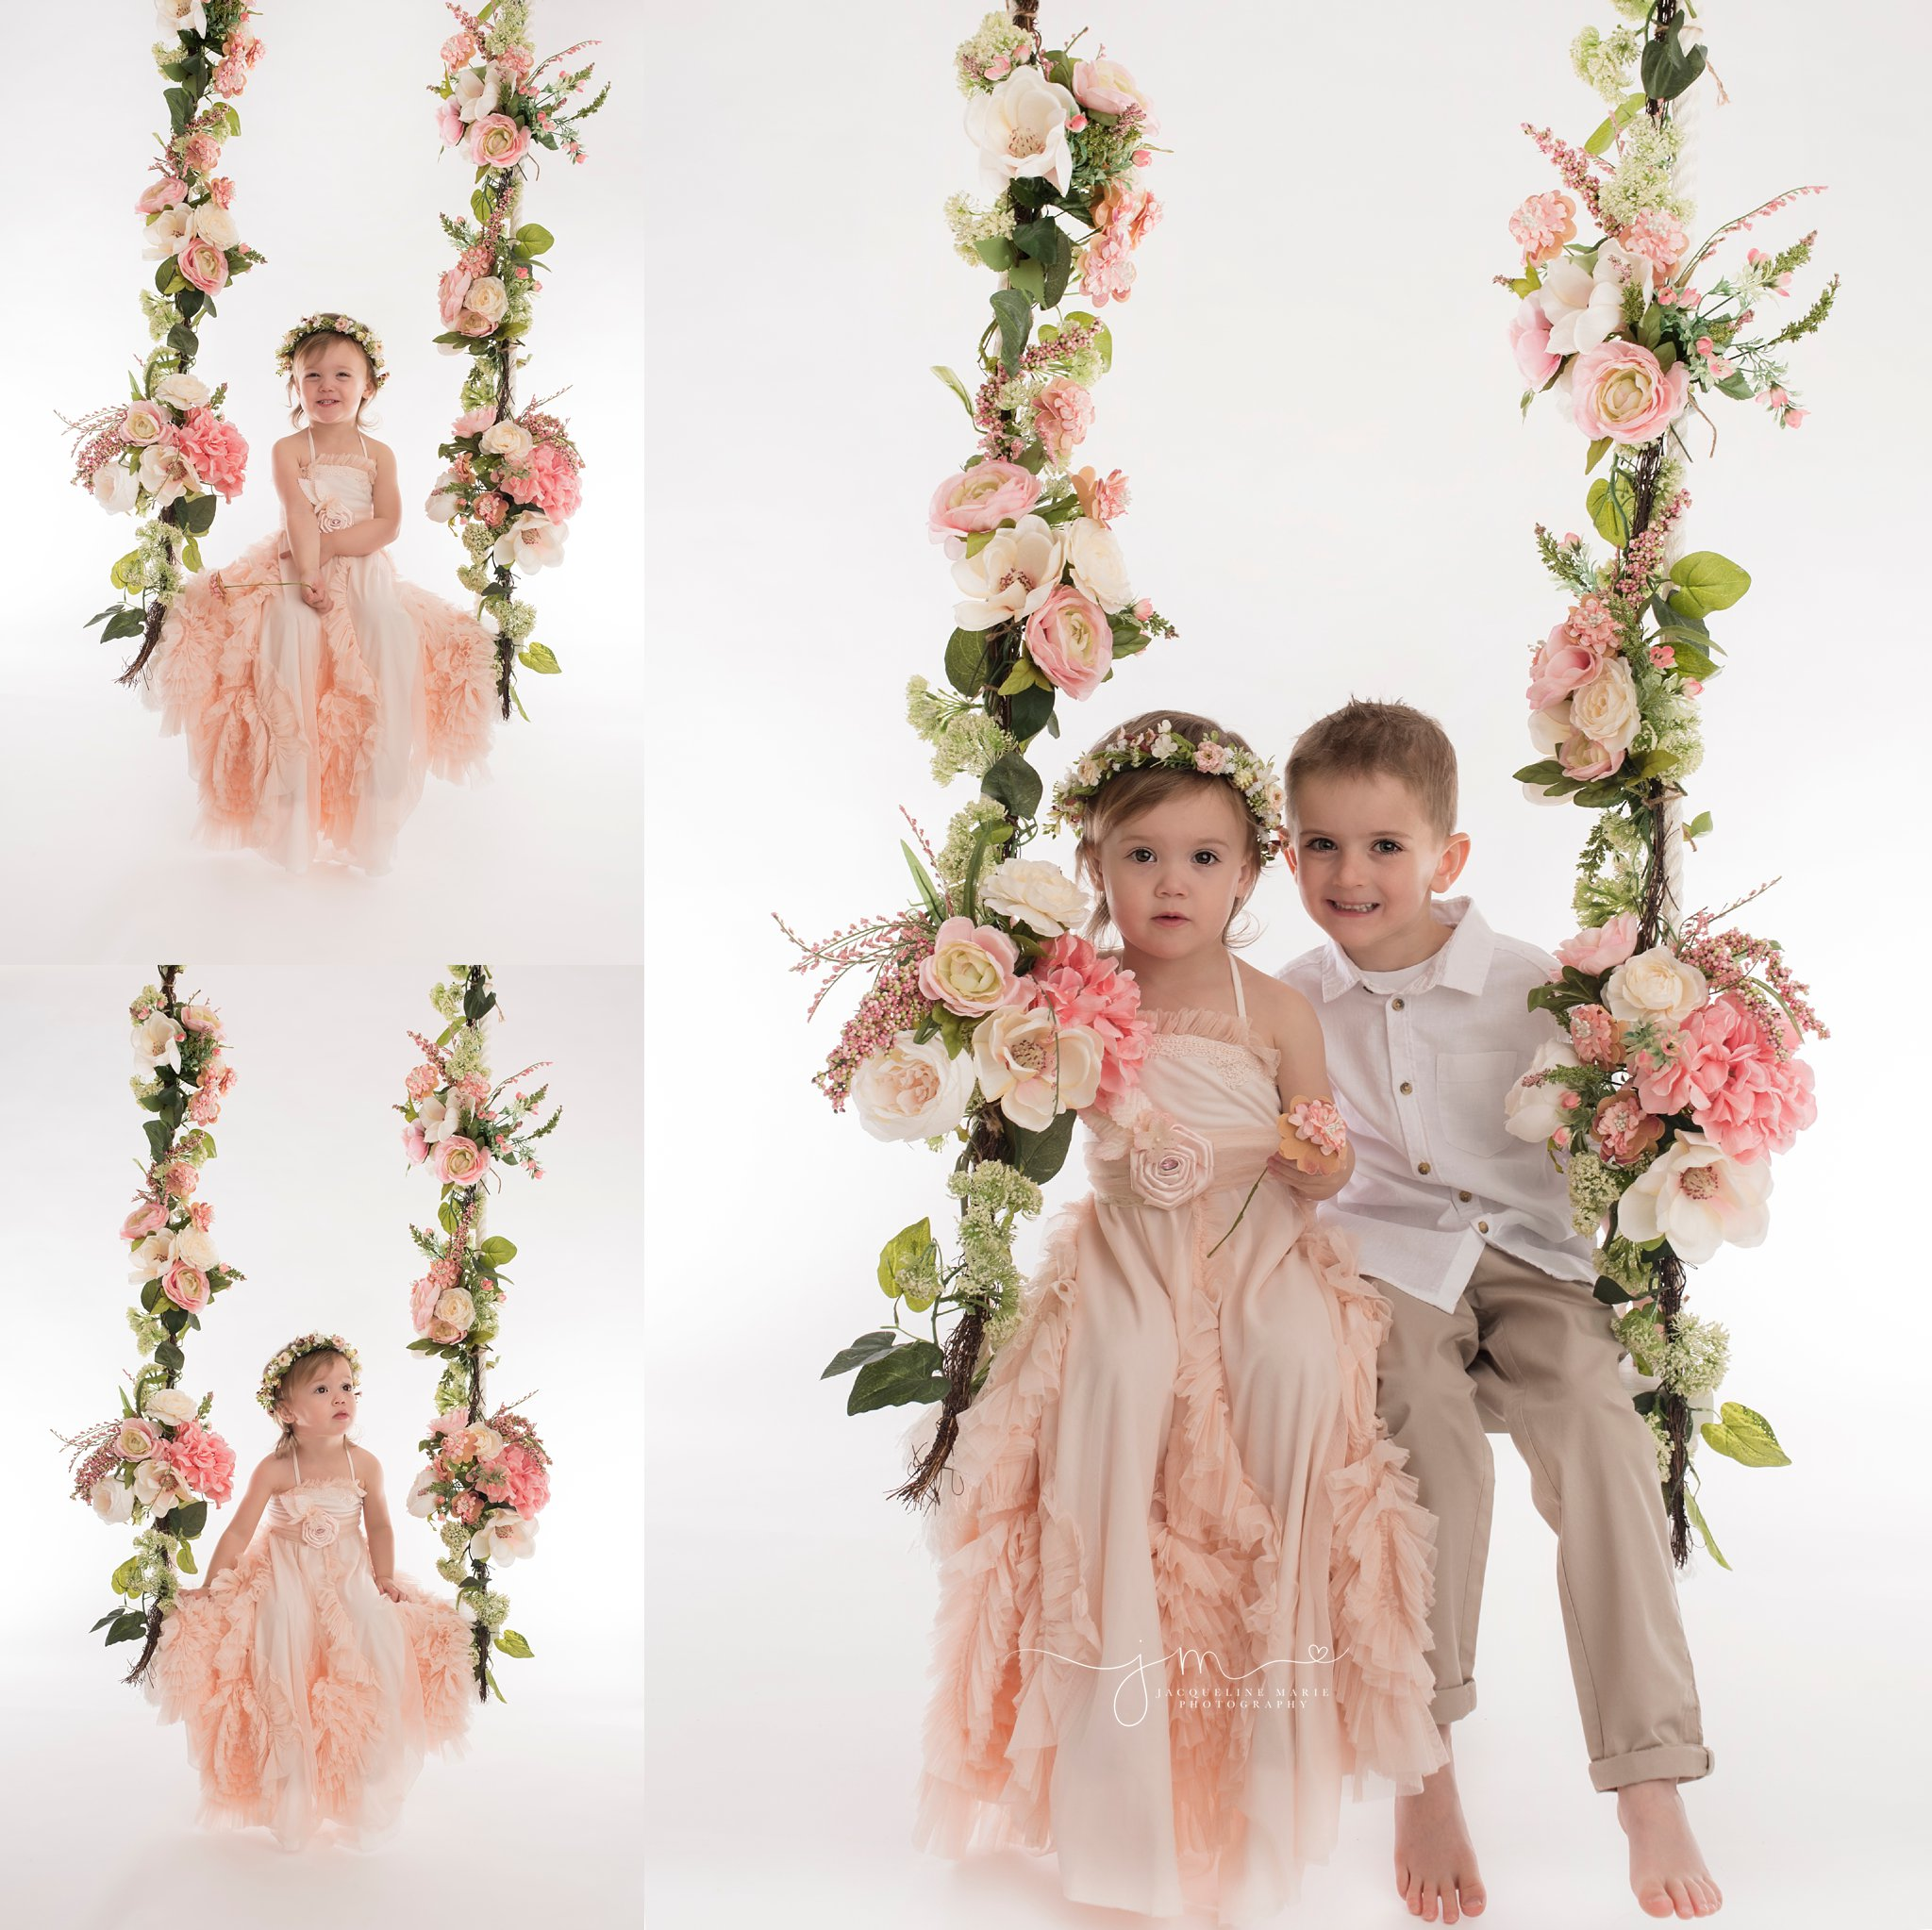 columbus ohio children photographer features image of brother and sister sitting on floral swing in portrait studio